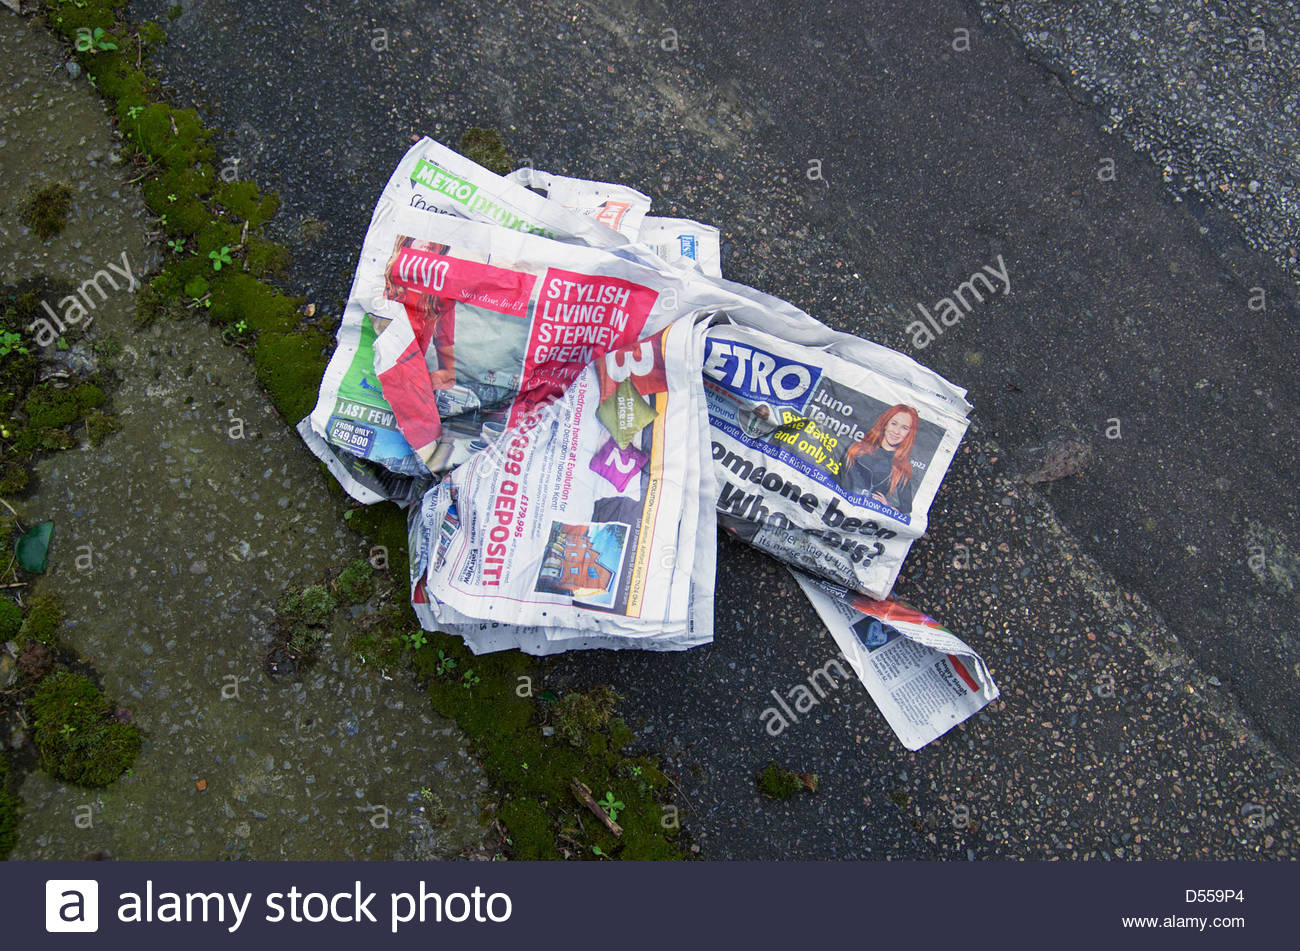 Free tabloid newspaper abandoned in street, London - Stock Image